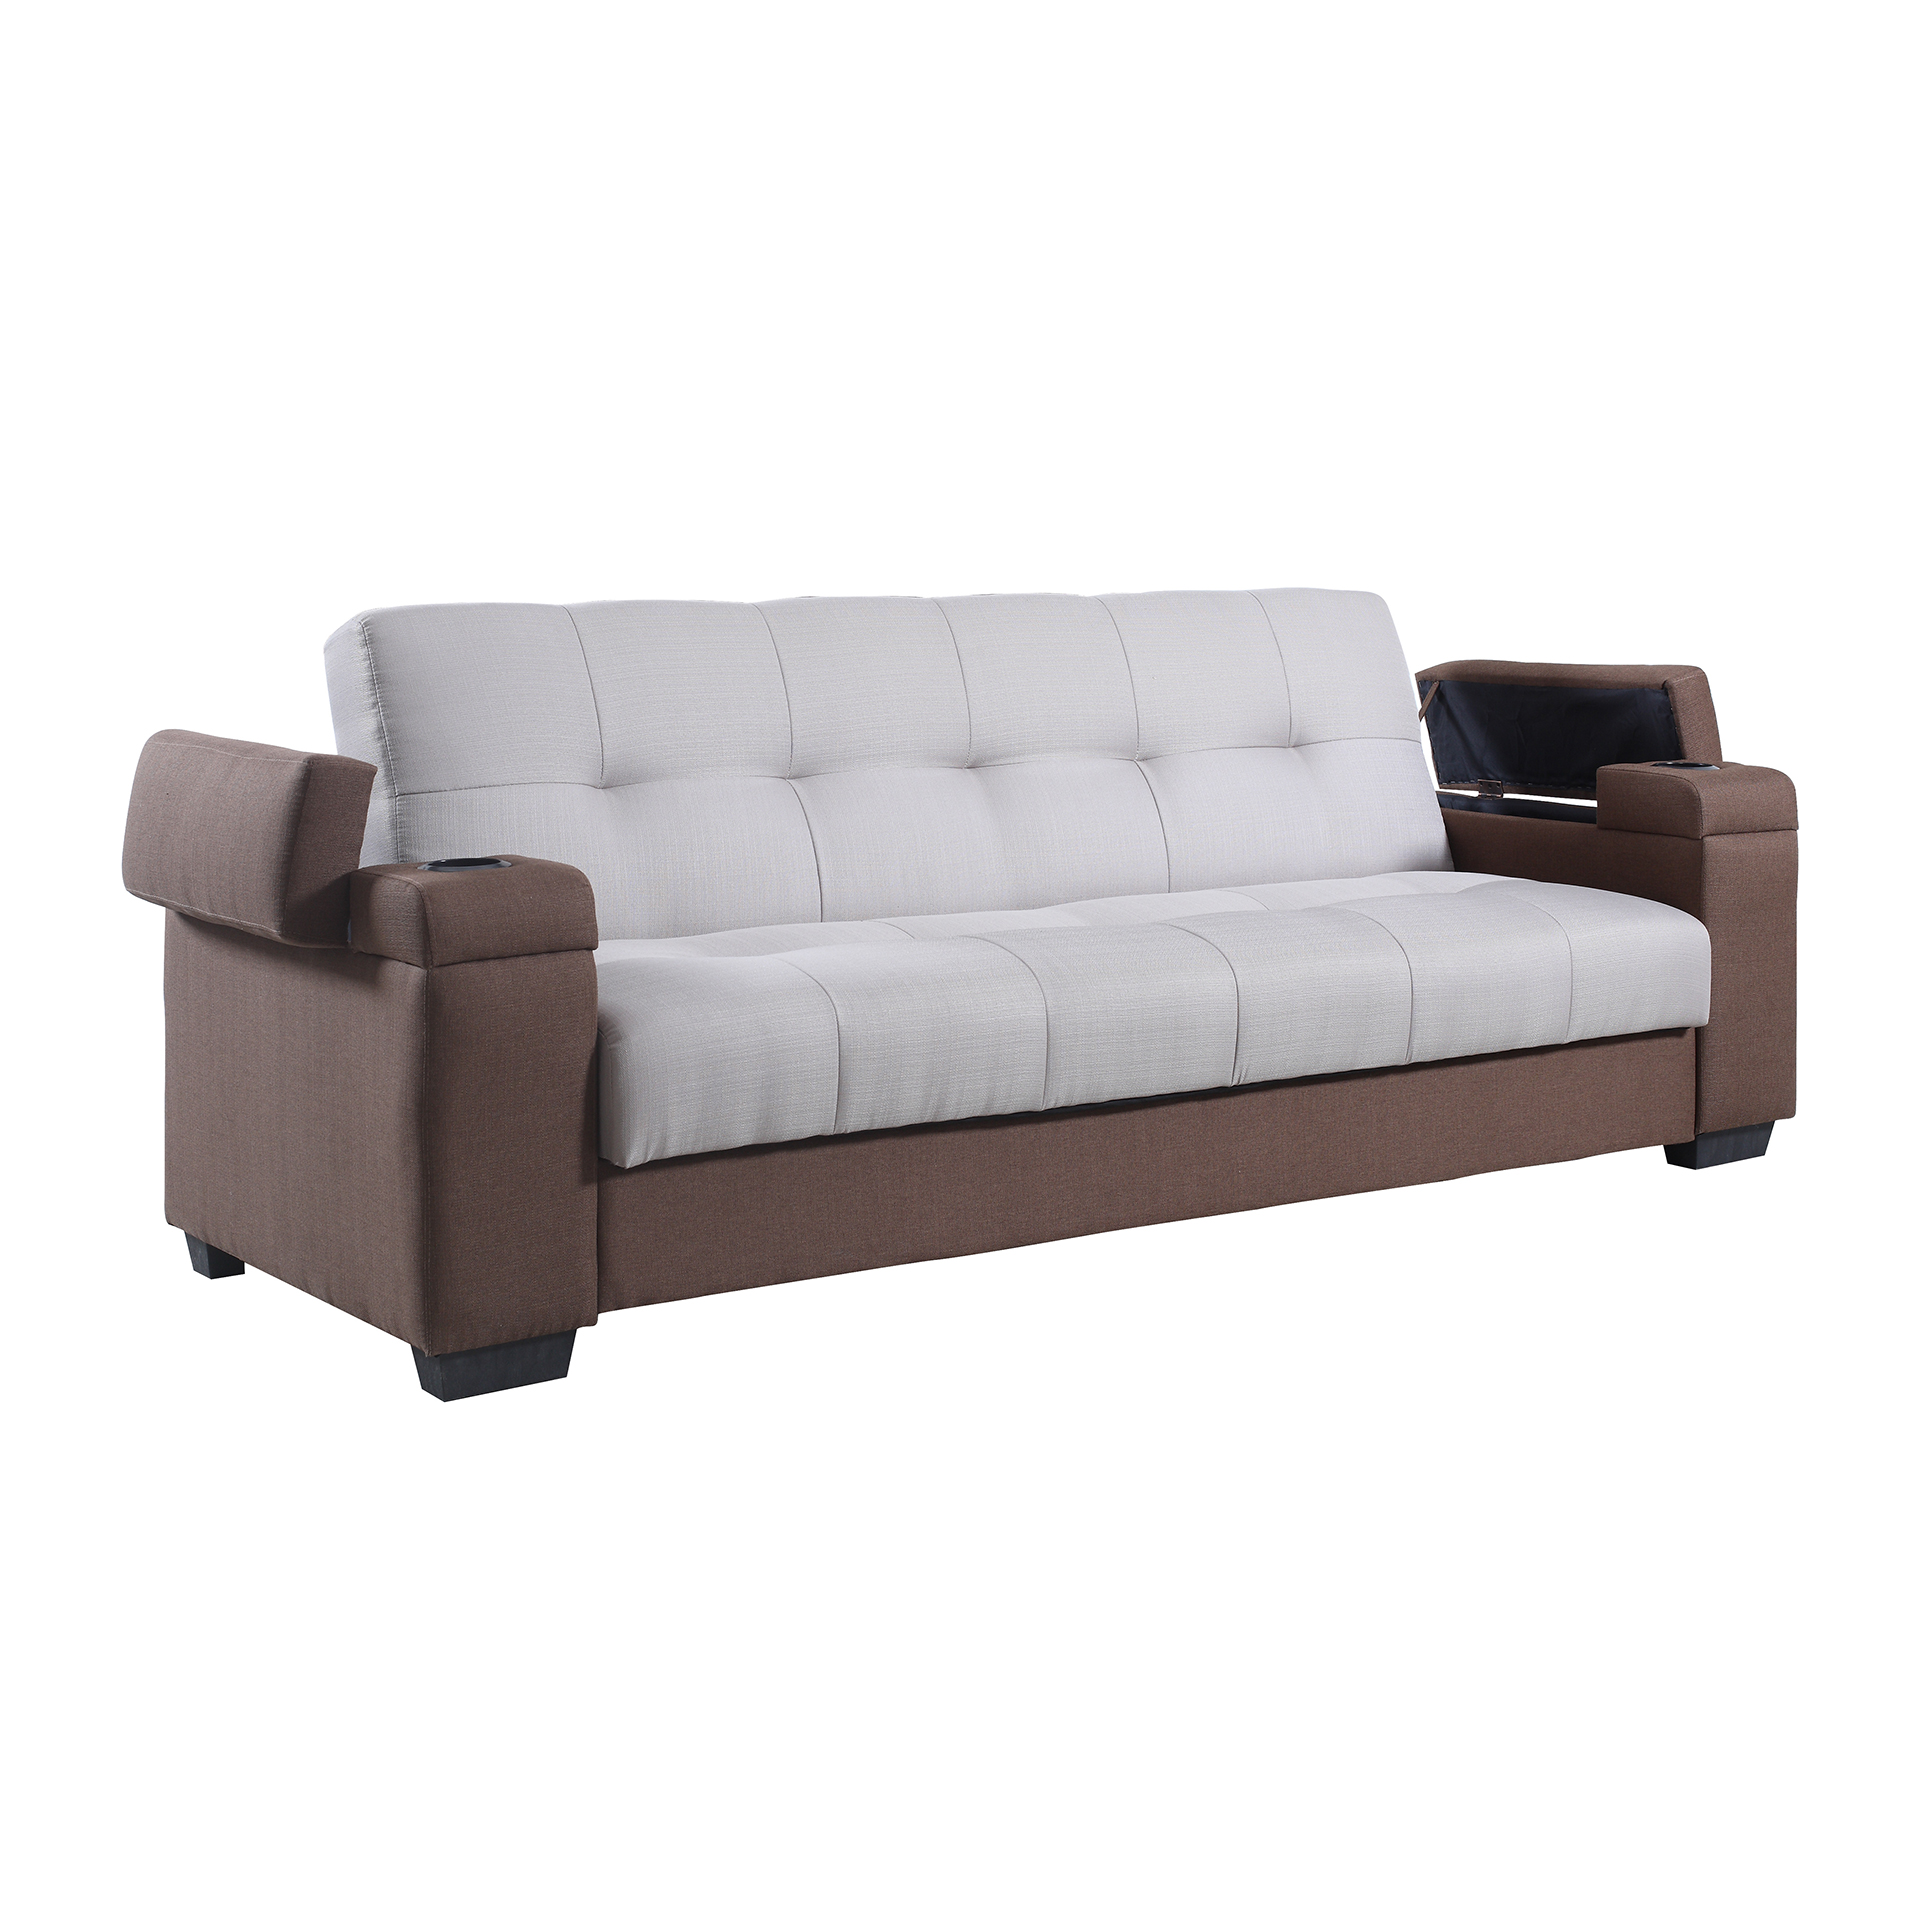 Sofa Manila Philippines Recliner Sofa Bed Aldo Manual Reclining Sofa Mocha